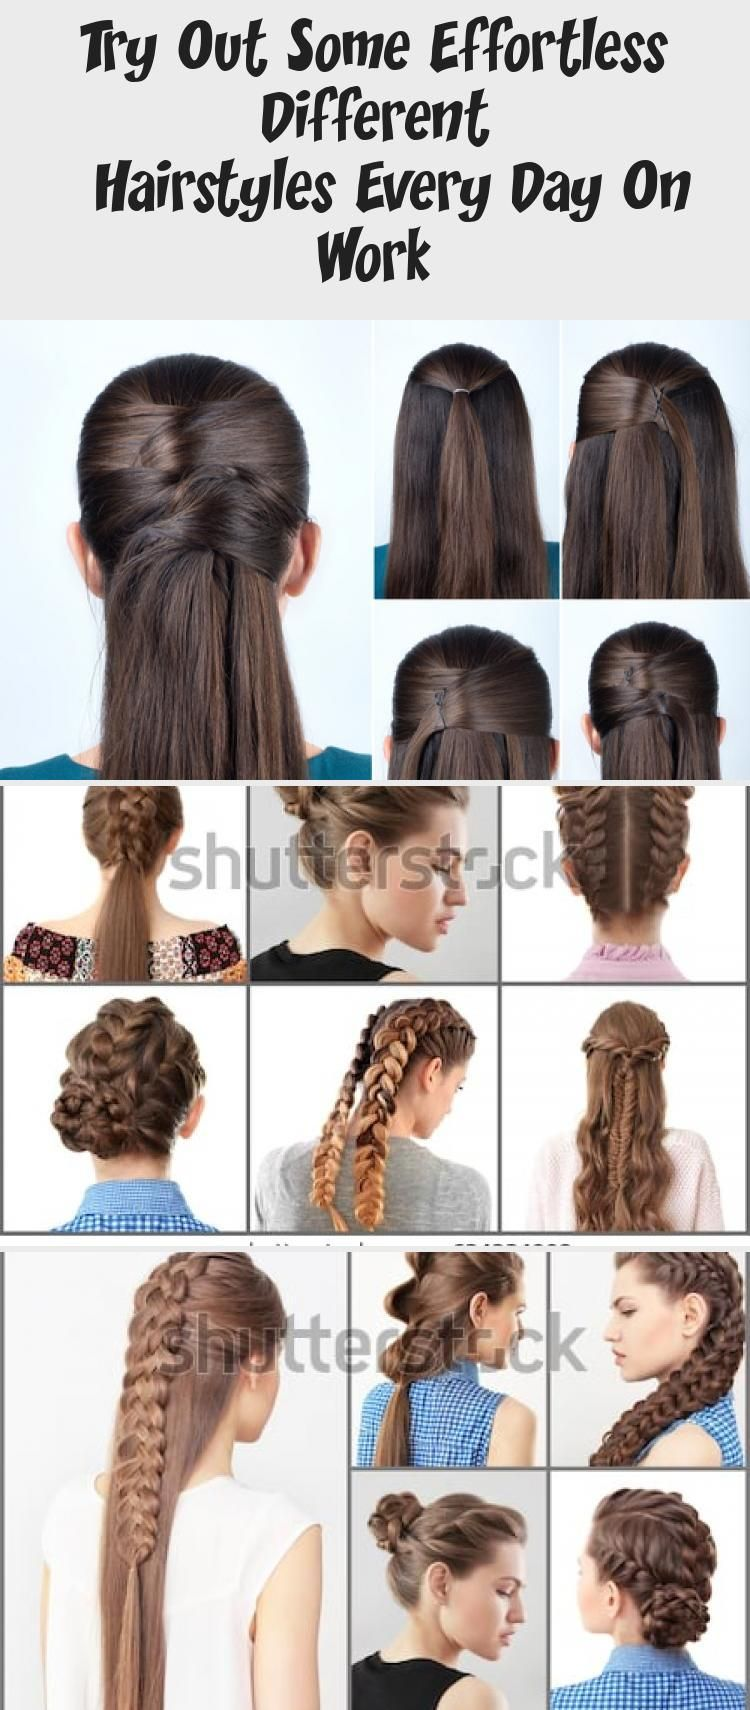 Try Out Some Effortless Different Hairstyles Every Day On Work 7 Easy Everyday Hairstyles For Each D In 2020 Everyday Hairstyles Hair Styles Easy Everyday Hairstyles